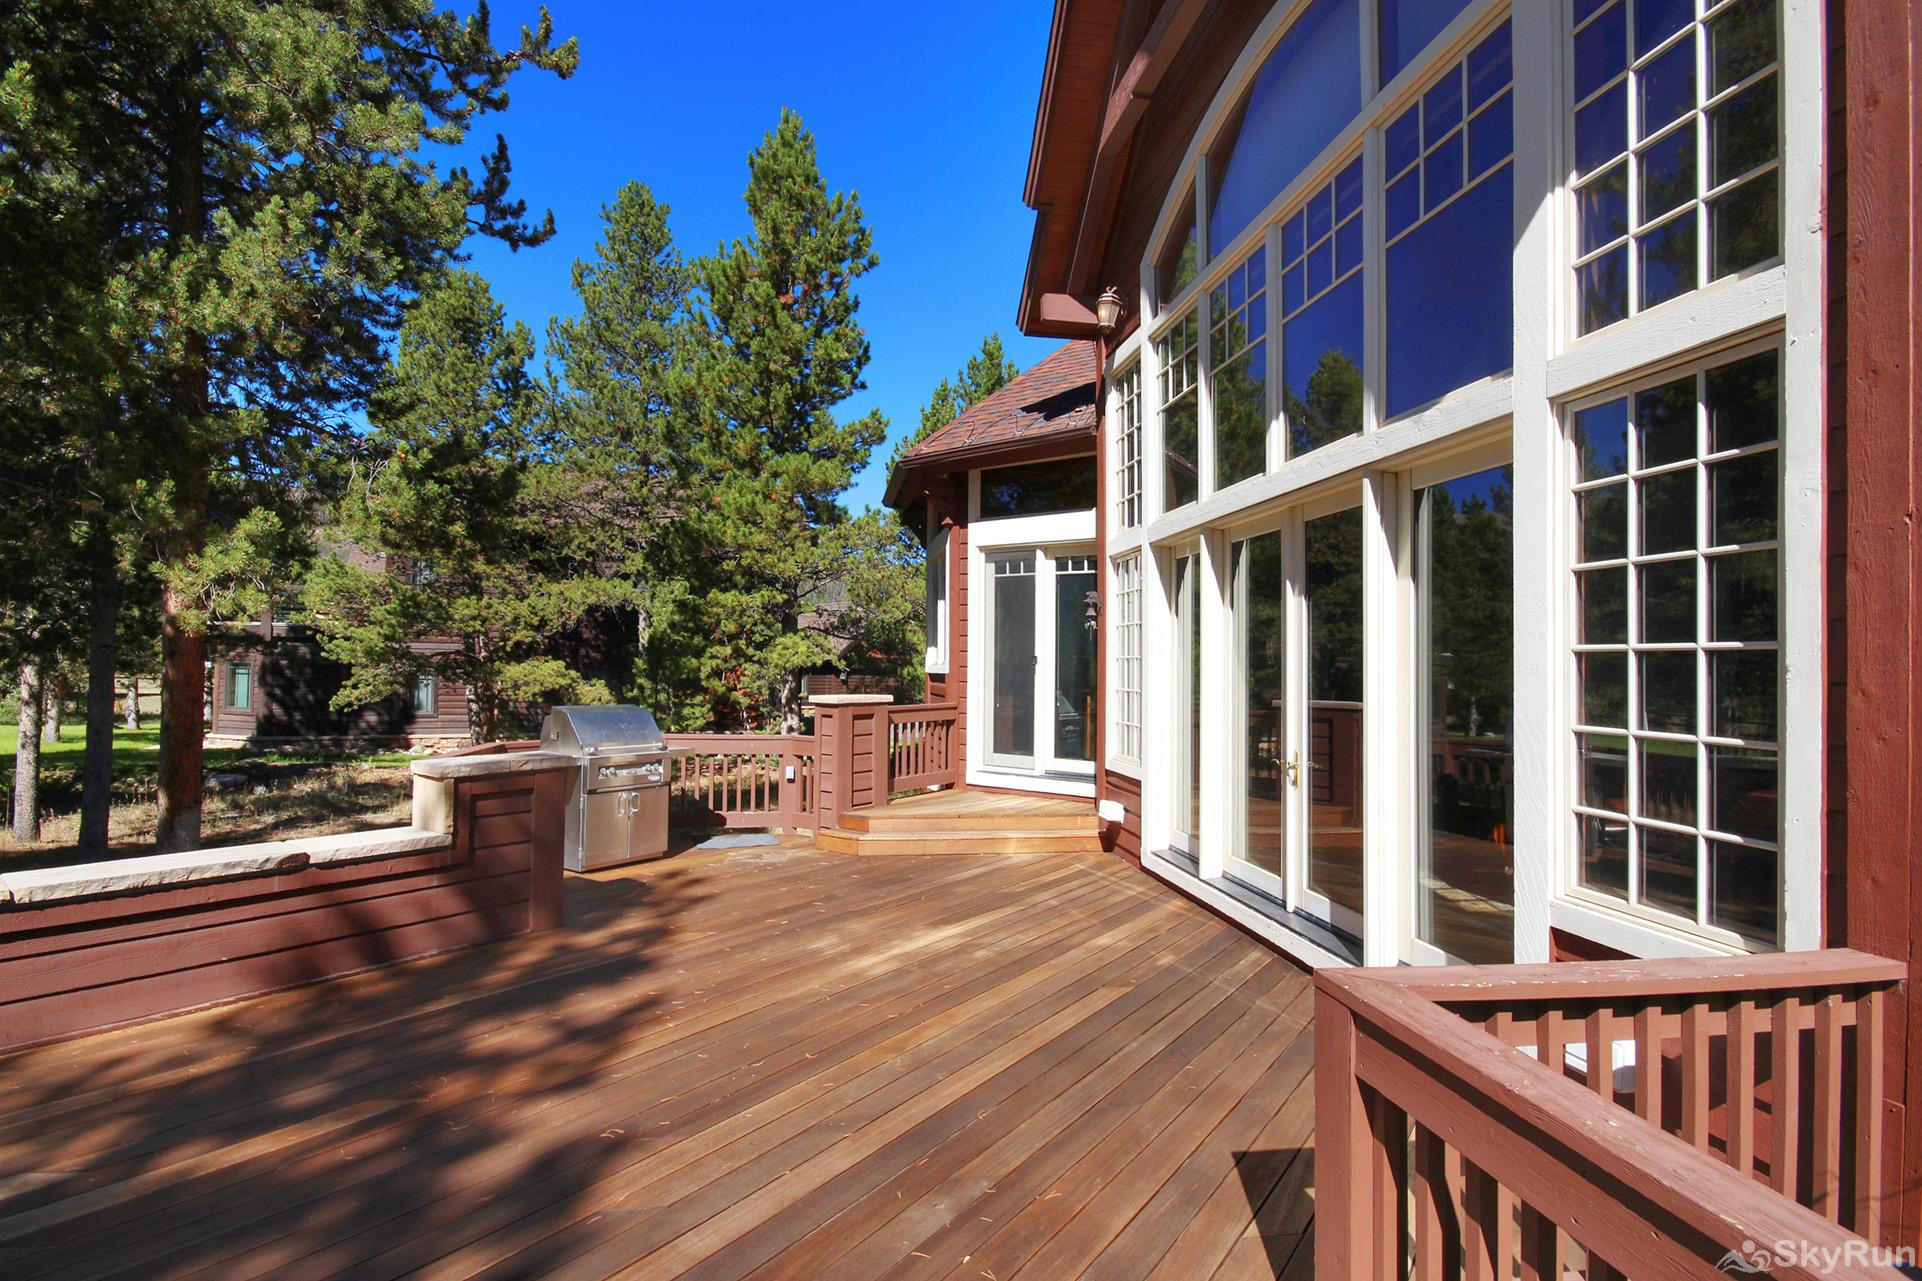 Marksberry Lodge Private back porch is perfect for spending time with family and friends